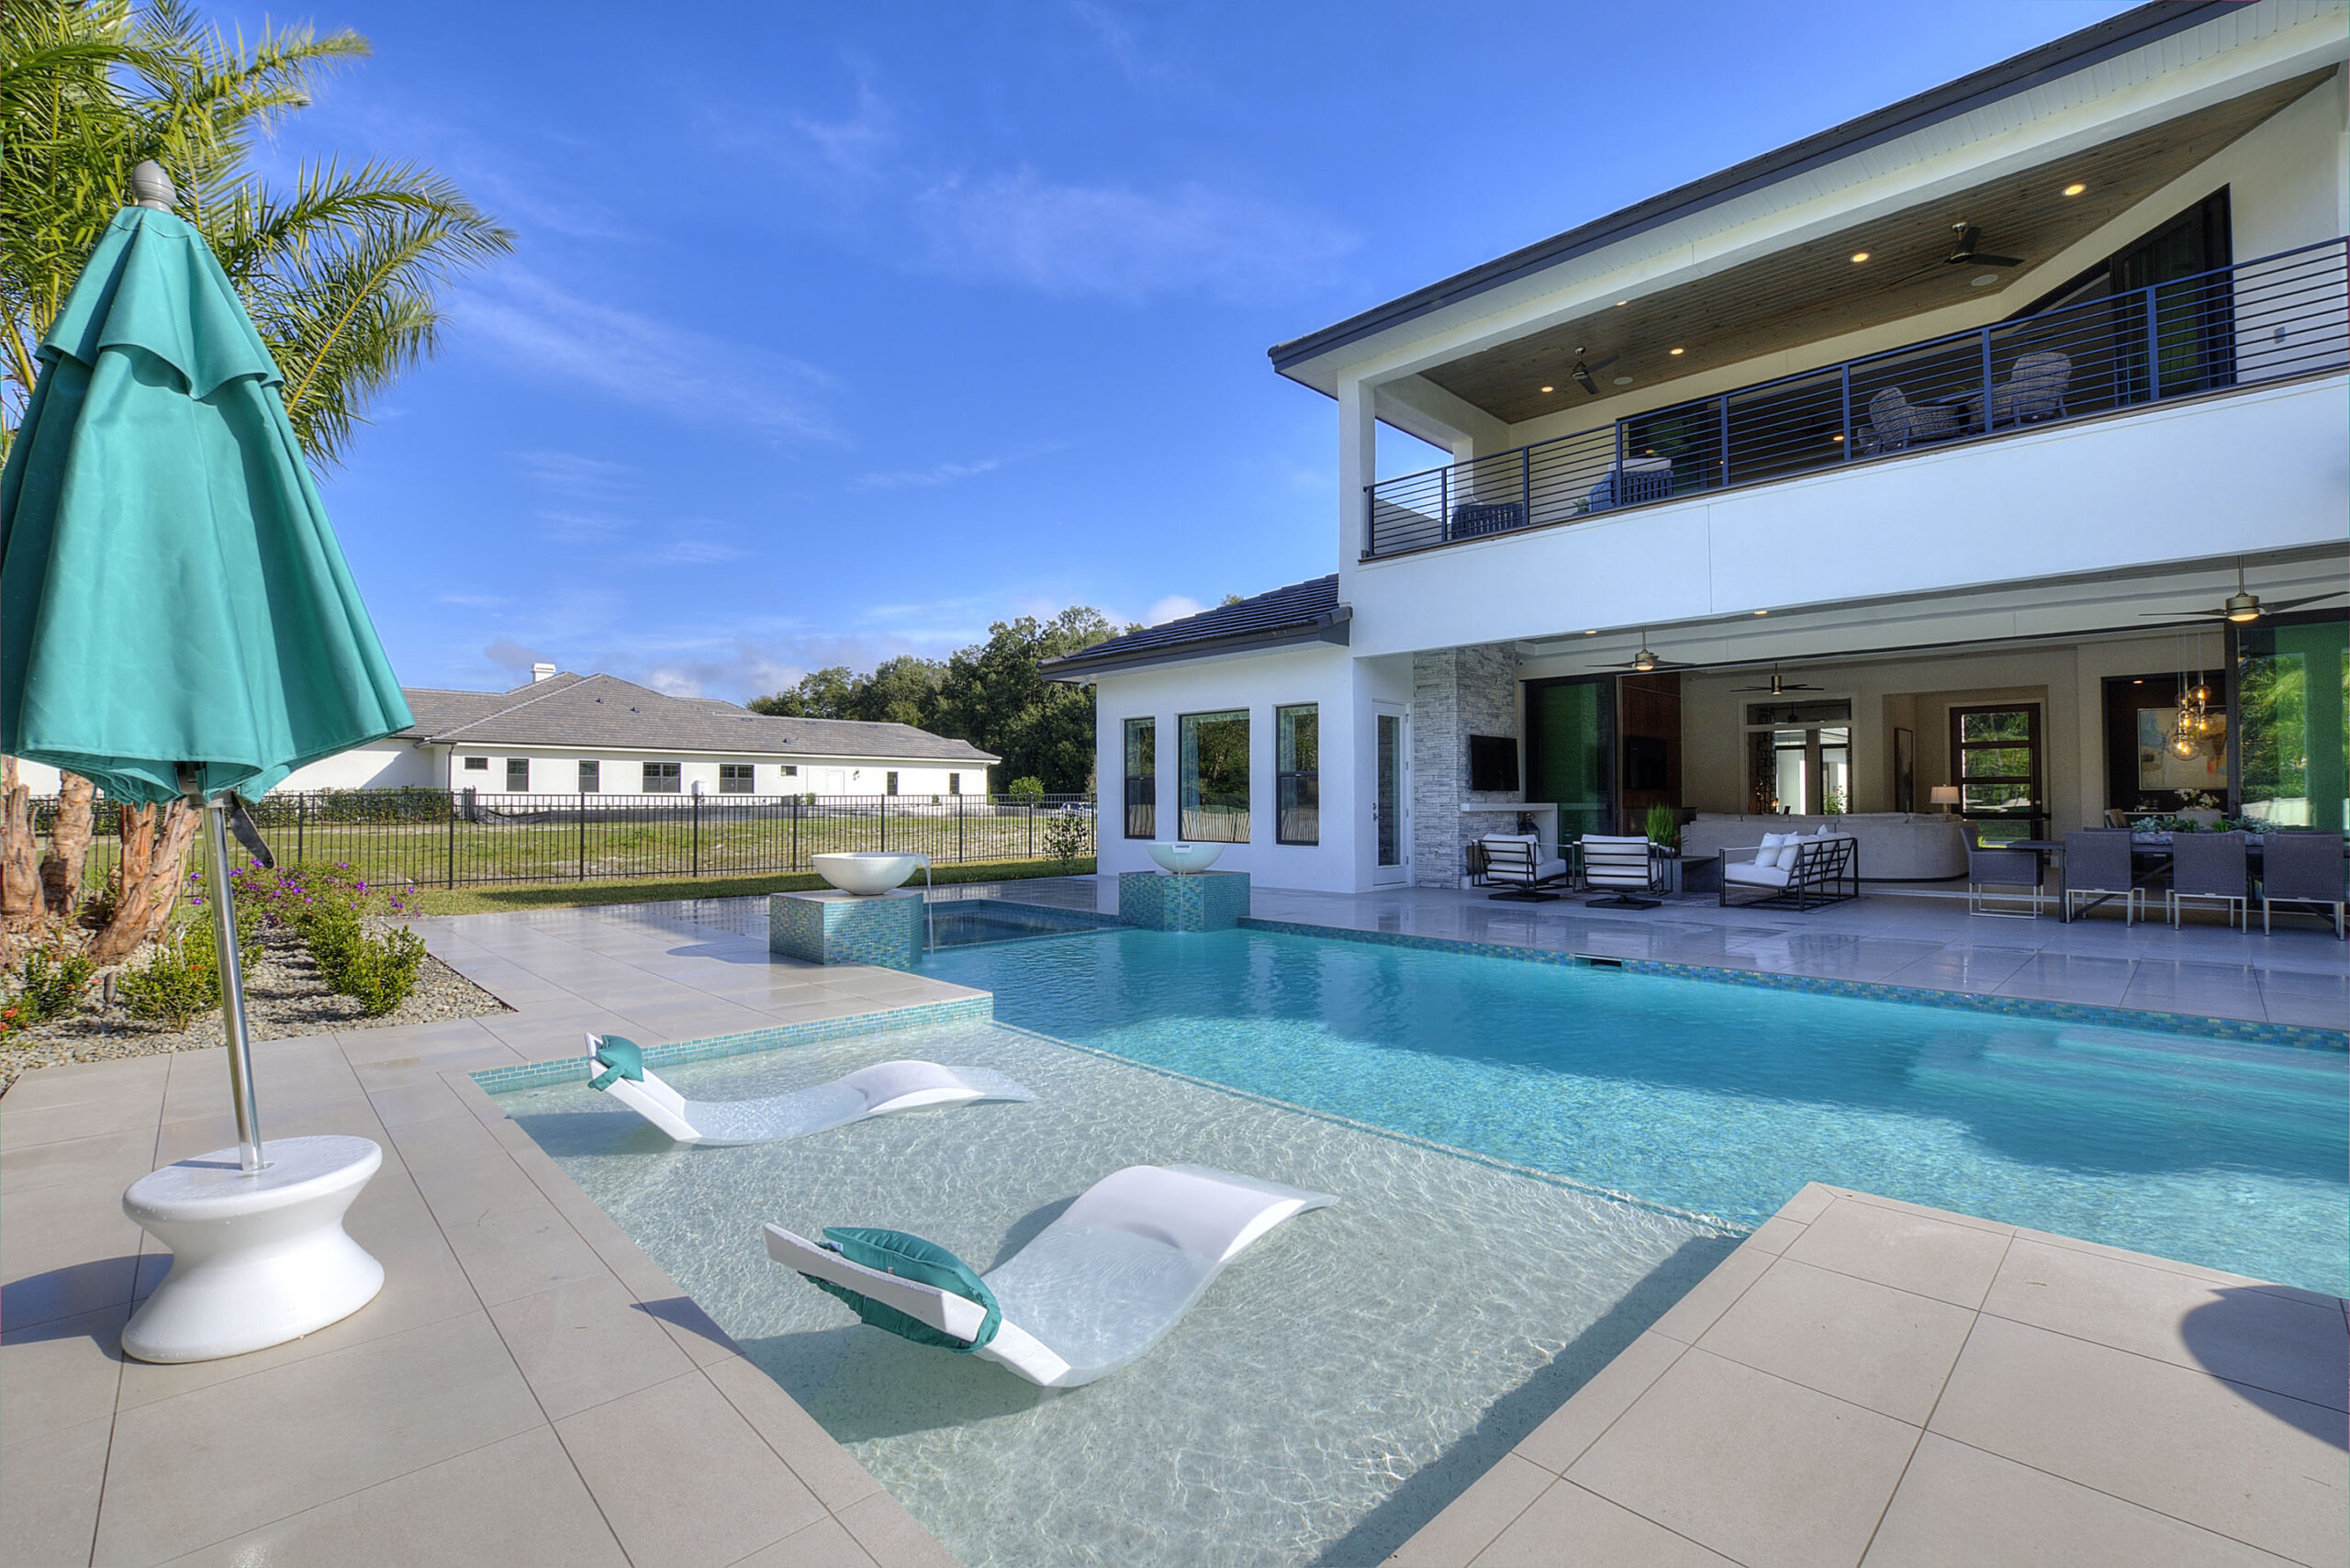 image of pool area of luxury home